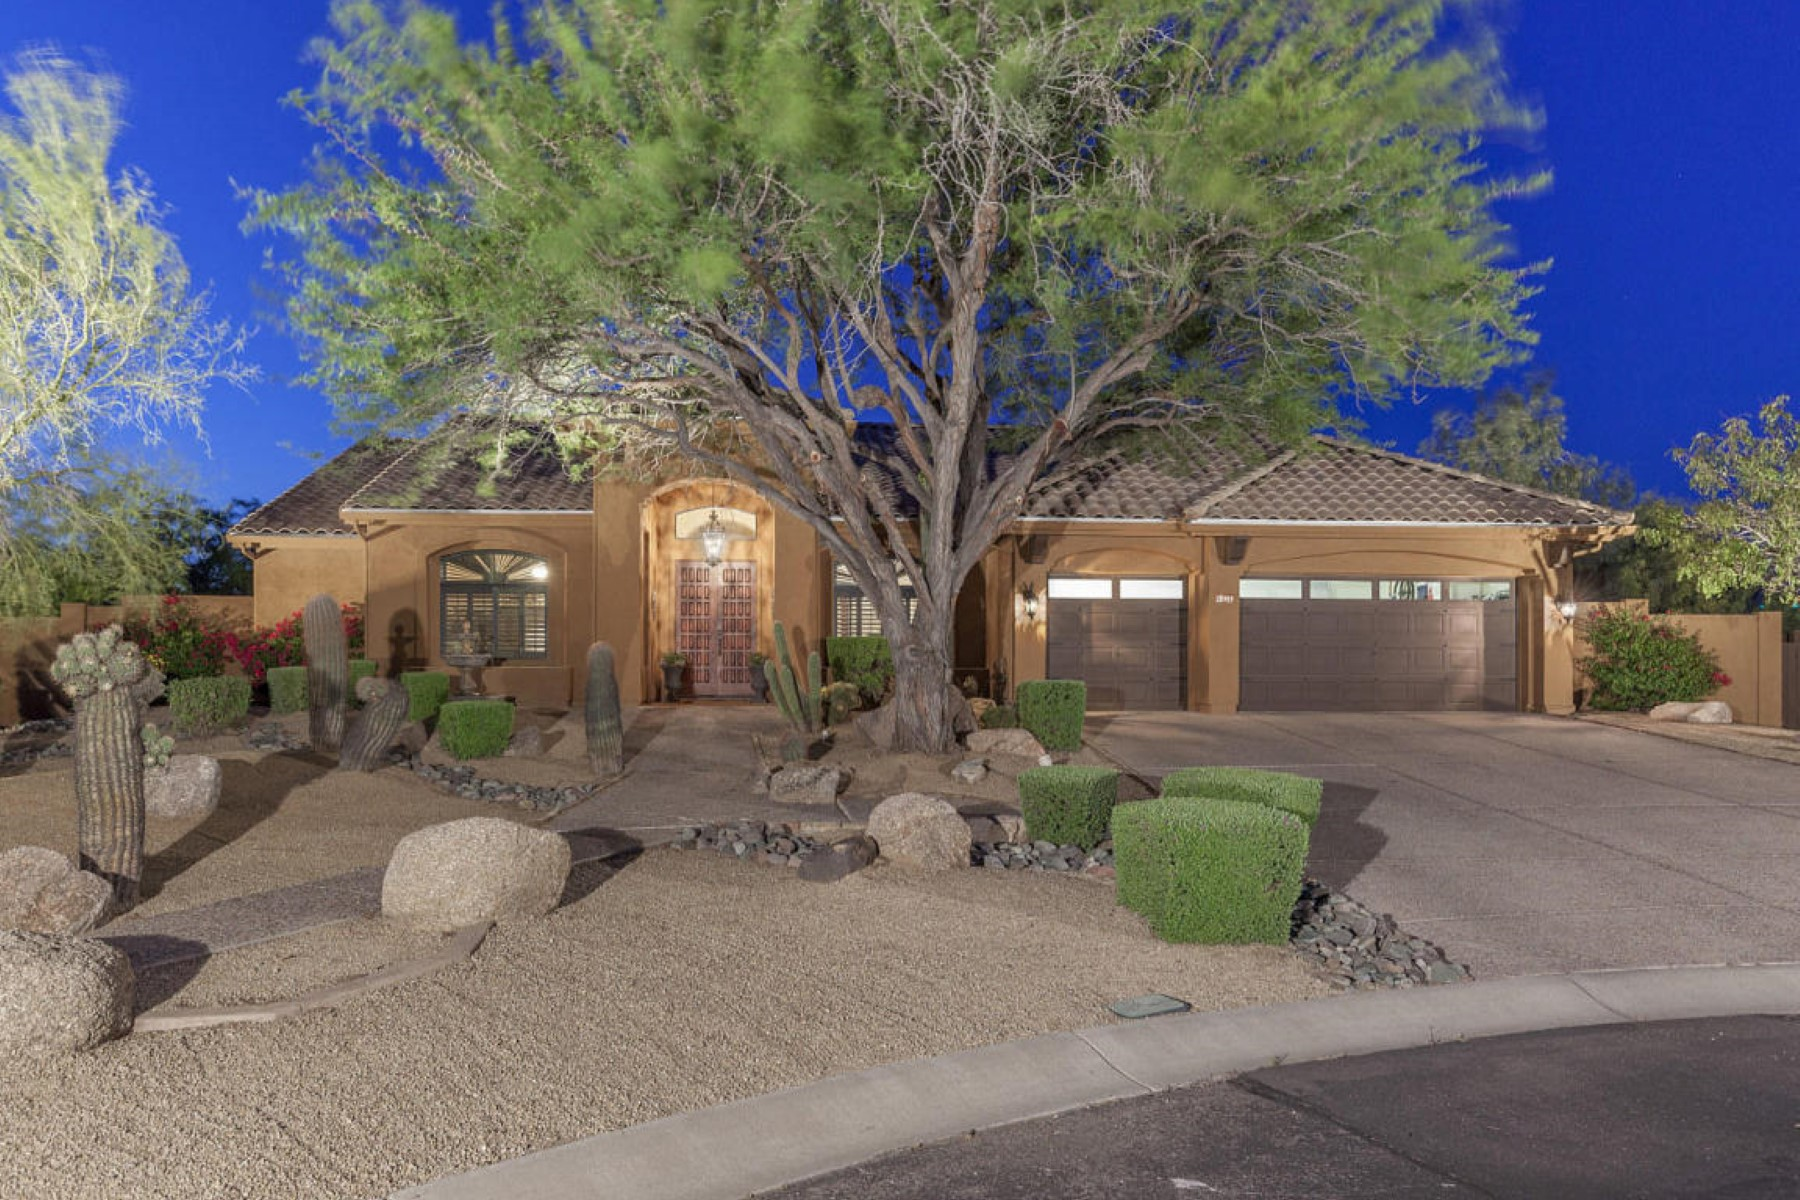 Maison unifamiliale pour l Vente à Elegant and extensively remodeled North Scottsdale semi custom home 24909 N 87th Way Scottsdale, Arizona 85255 États-Unis